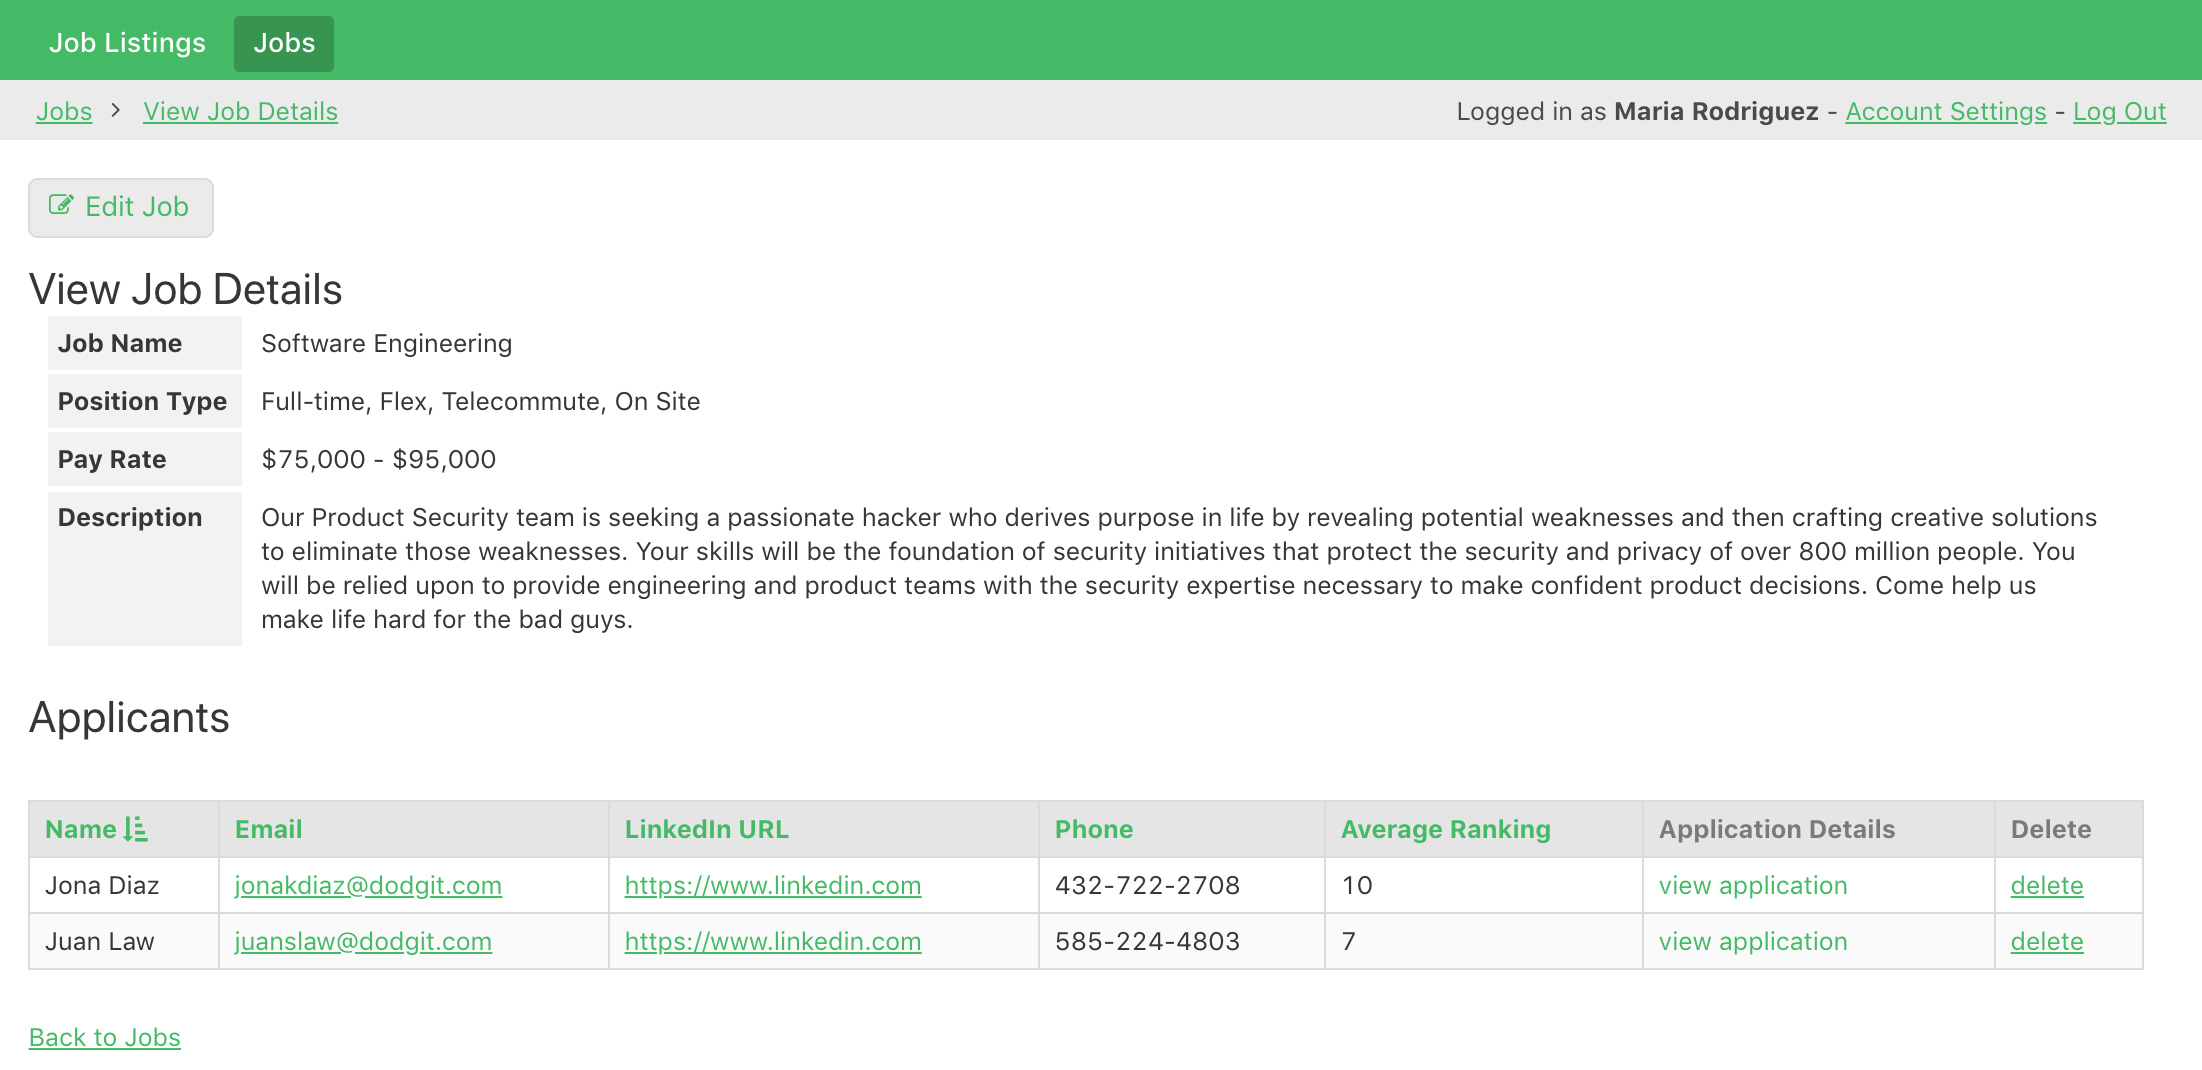 HR staff can view job listing details and applications.